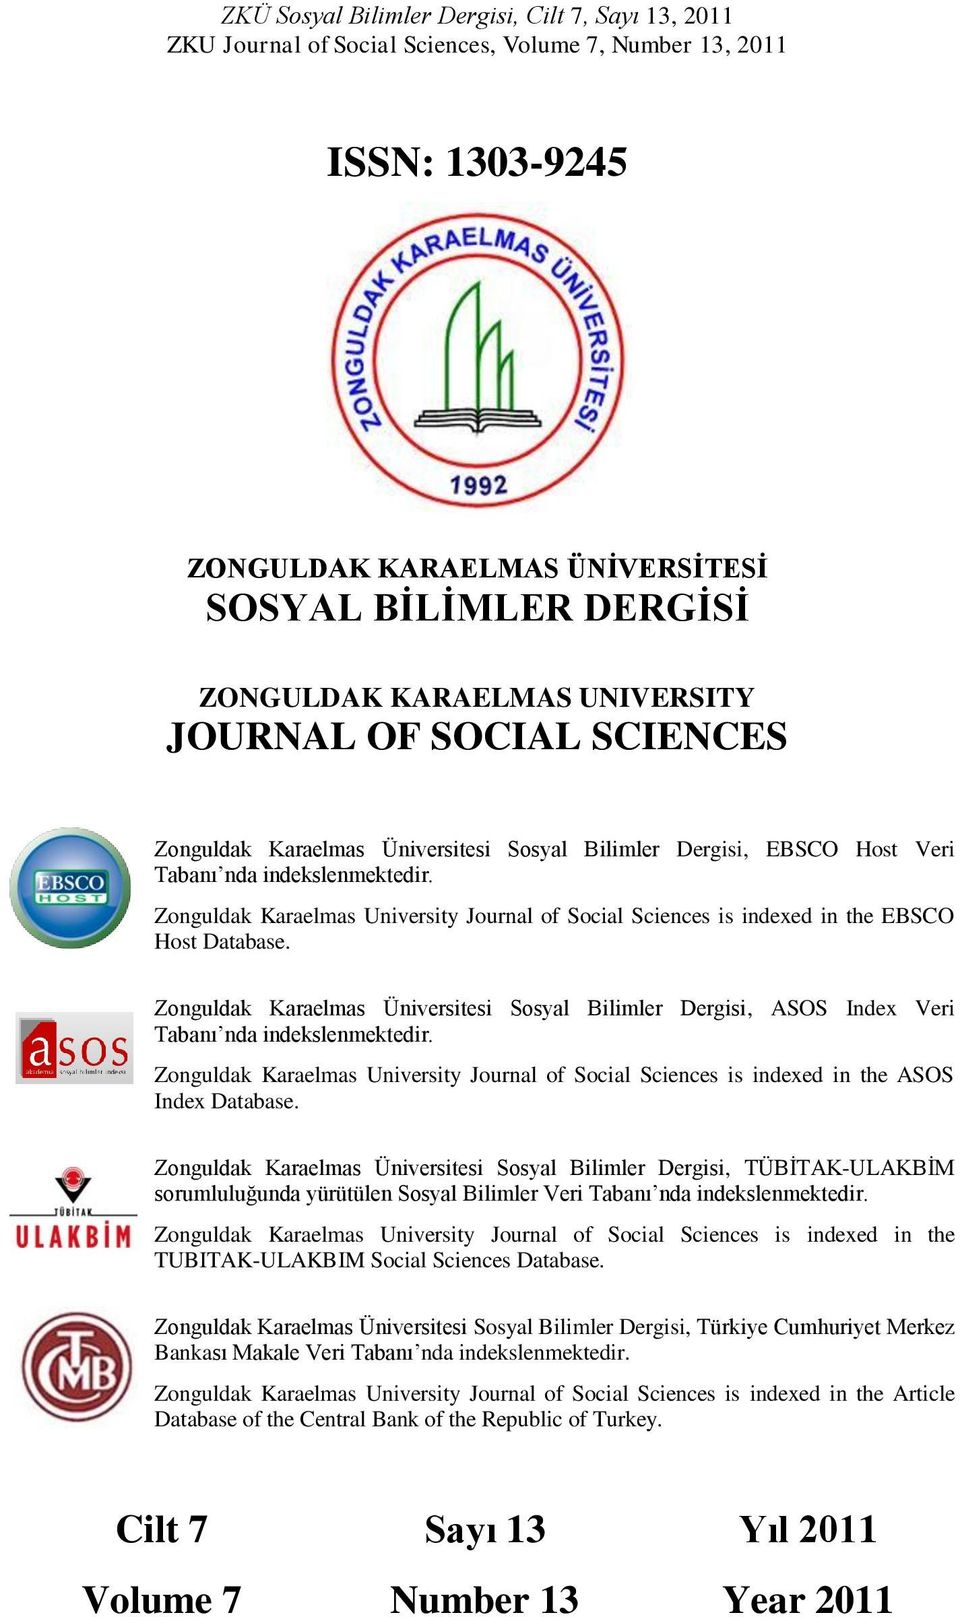 Zonguldak Karaelmas Üniversitesi Sosyal Bilimler Dergisi, ASOS Index Veri Tabanı nda indekslenmektedir. Zonguldak Karaelmas University Journal of Social Sciences is indexed in the ASOS Index Database.